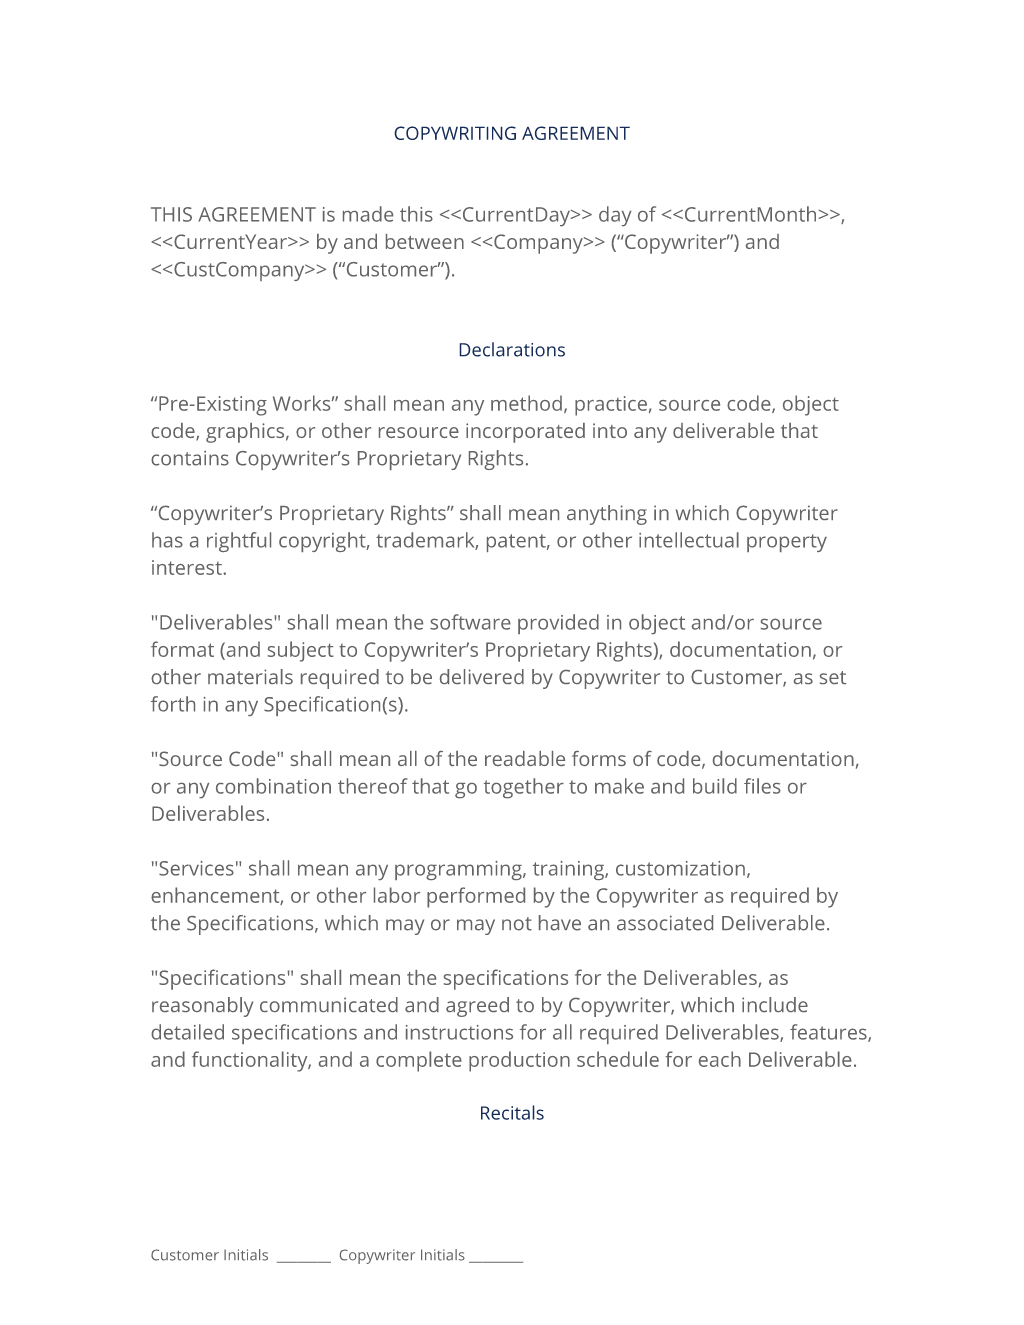 Copywriting Contract  The Copywriting Agreement Is Used When